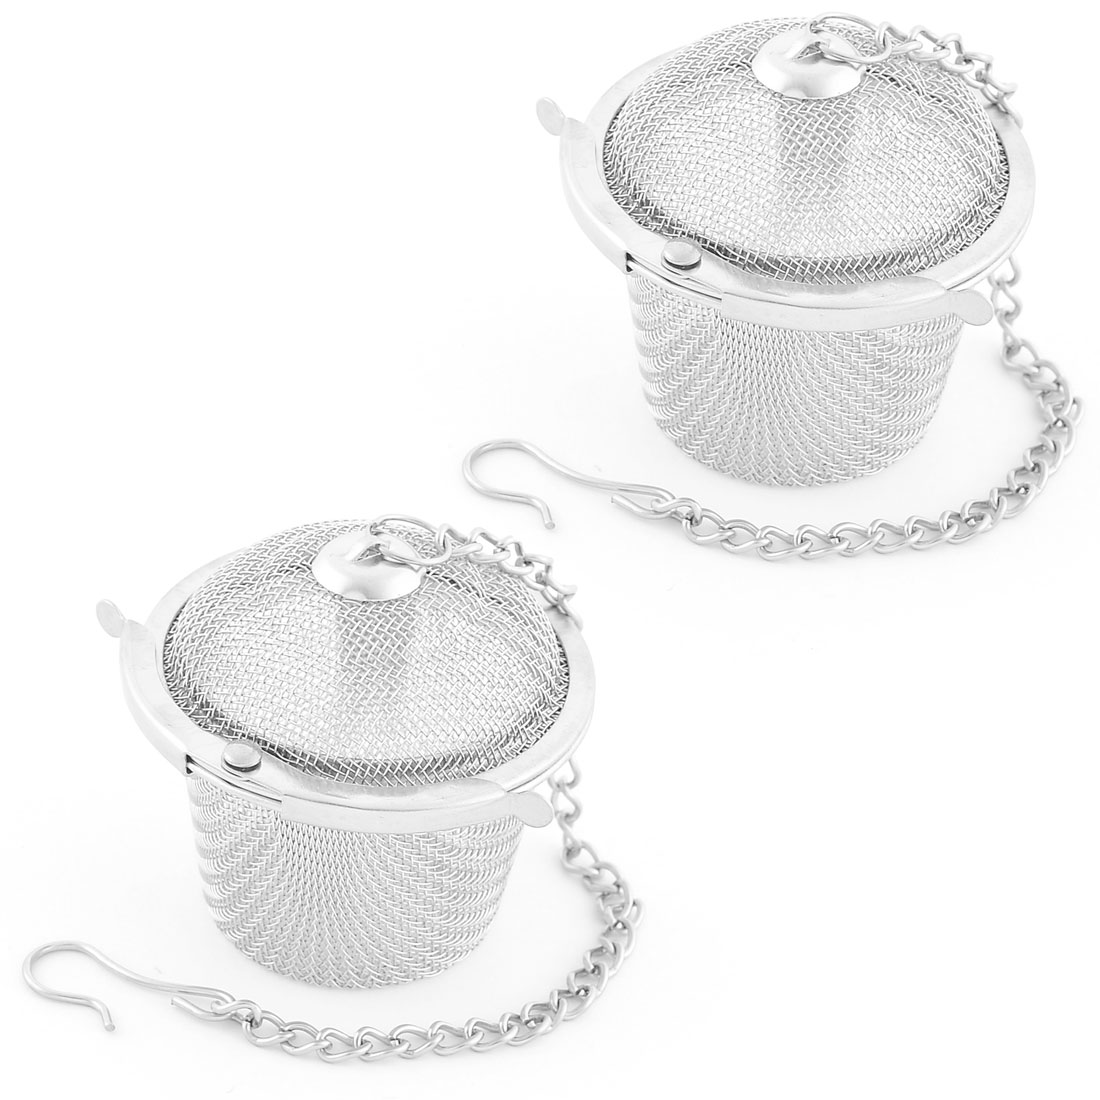 Stainless Steel Mesh Locked Infuser Filter Diffuser Tea Stainer 36mm Dia 2PCS